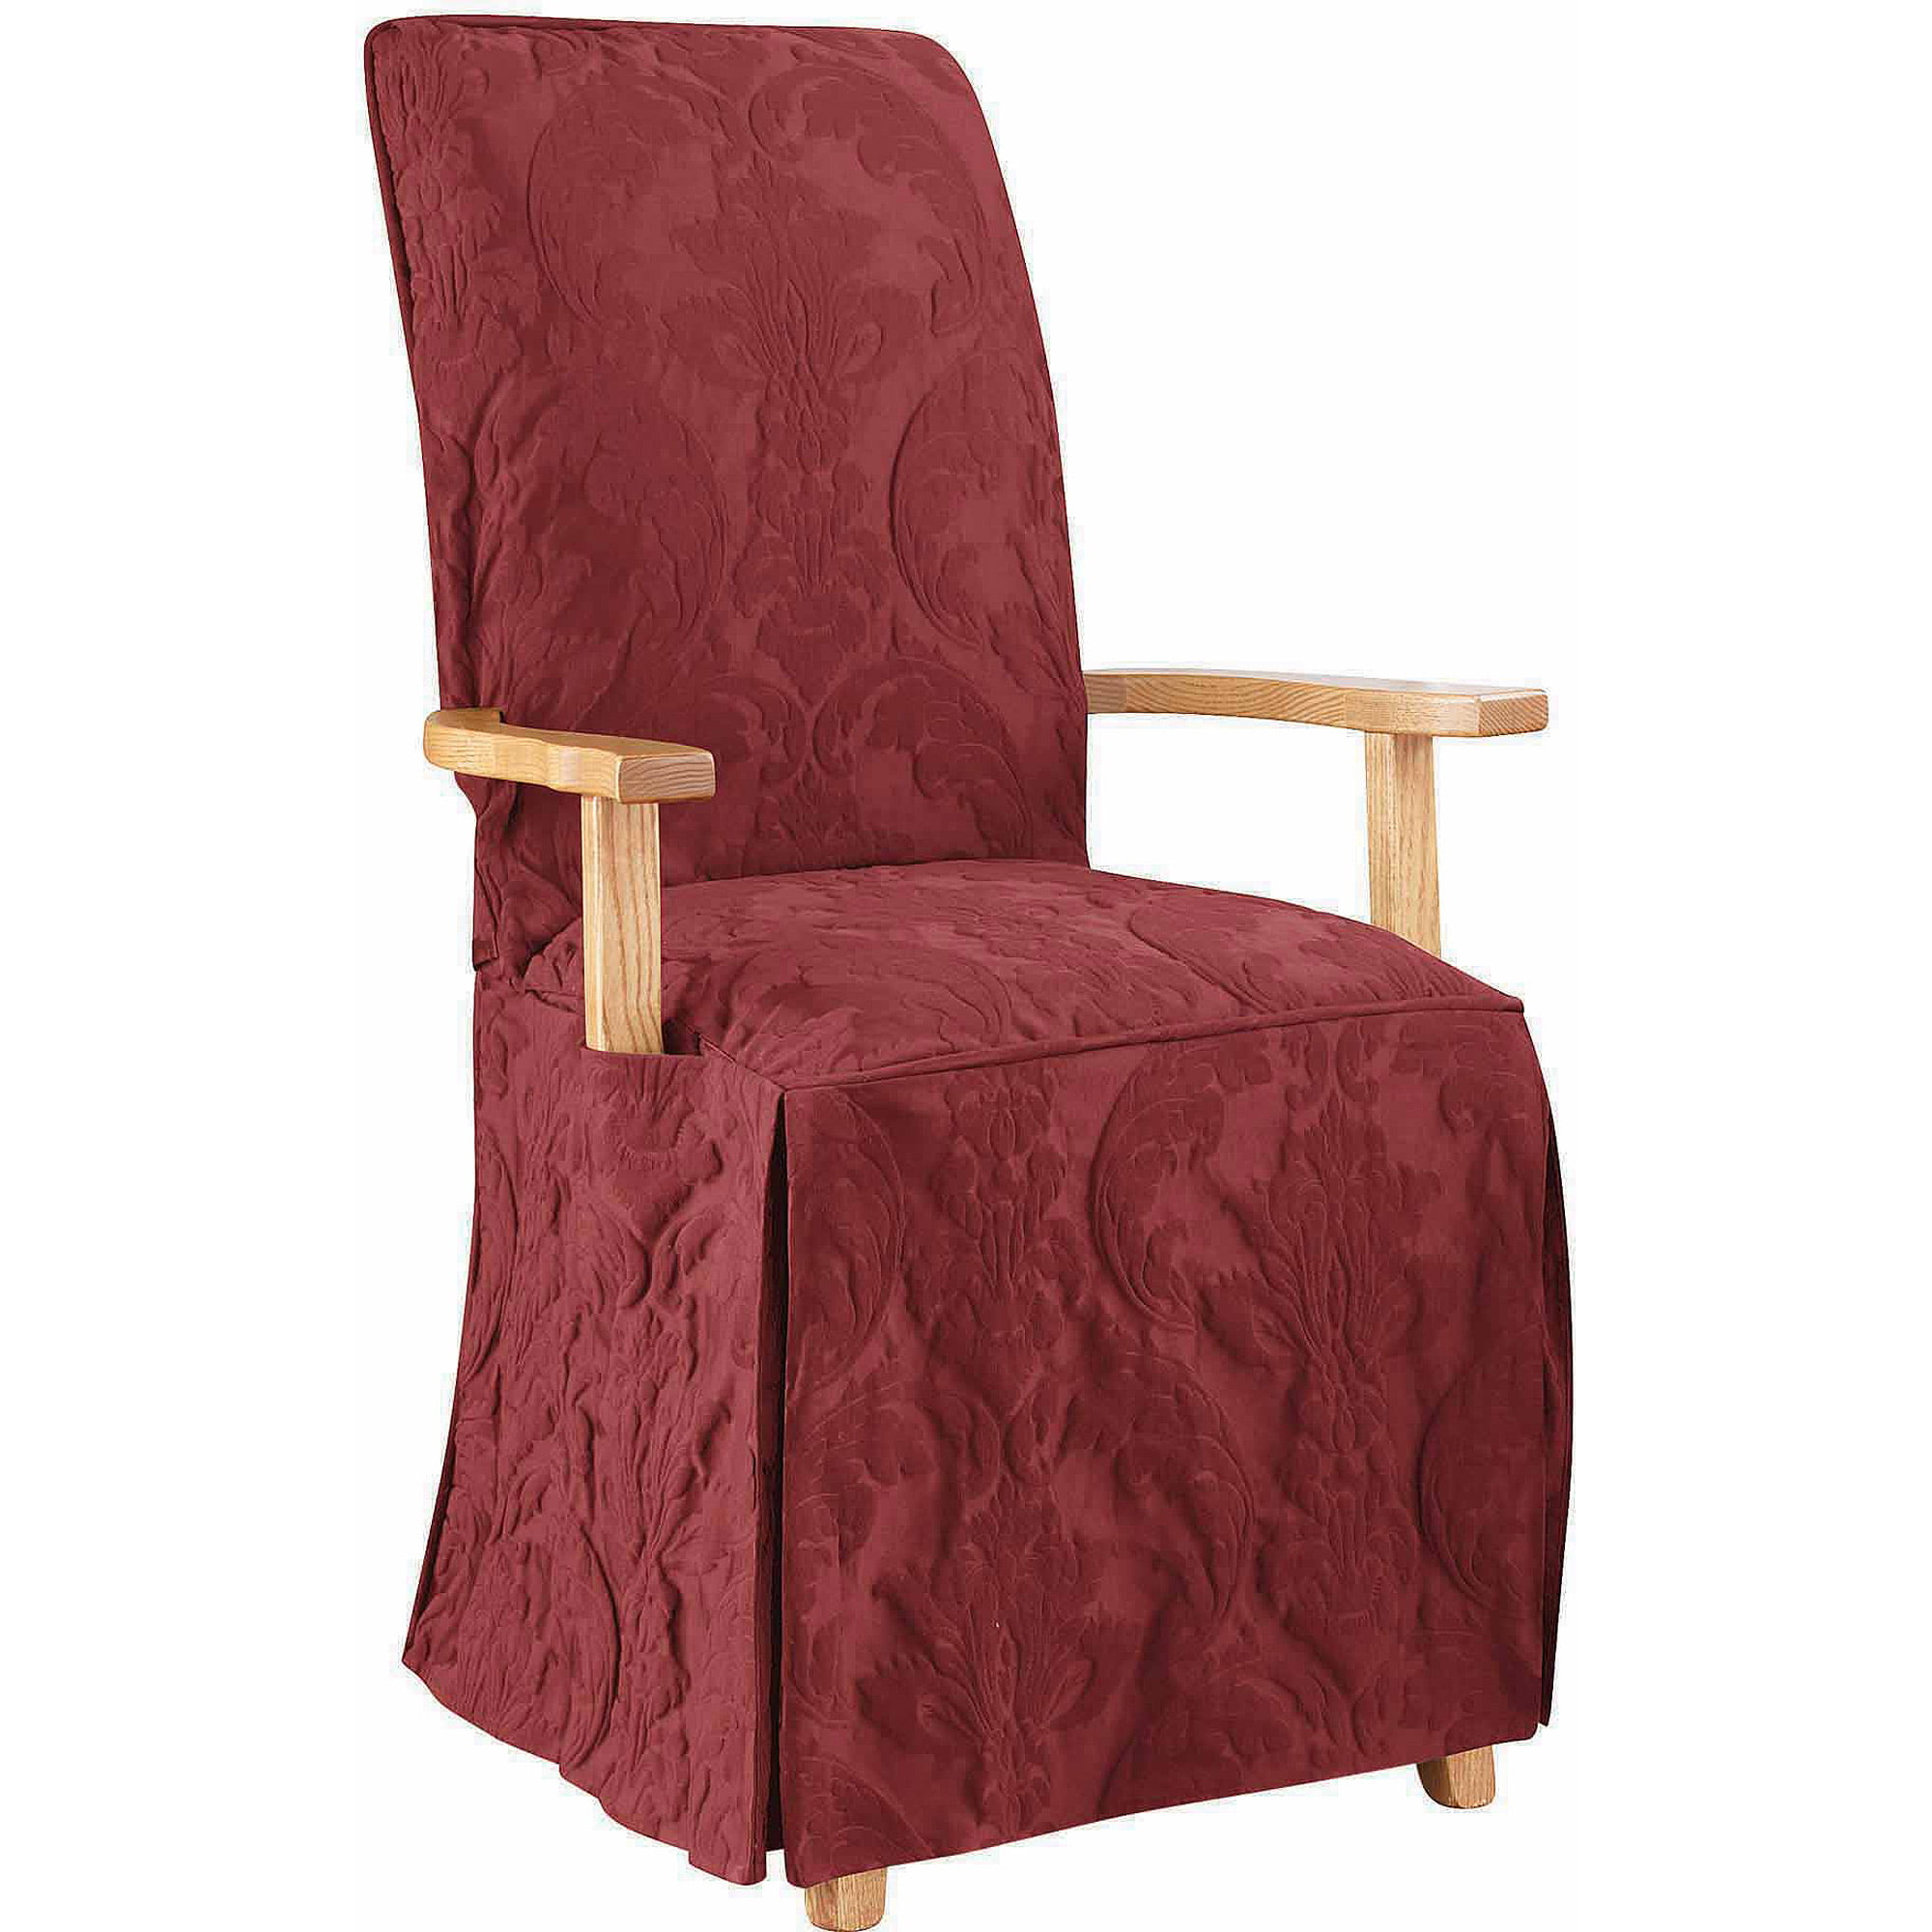 Fine Sure Fit Matelasse Damask Arm Long Dining Chair Slipcover Uwap Interior Chair Design Uwaporg